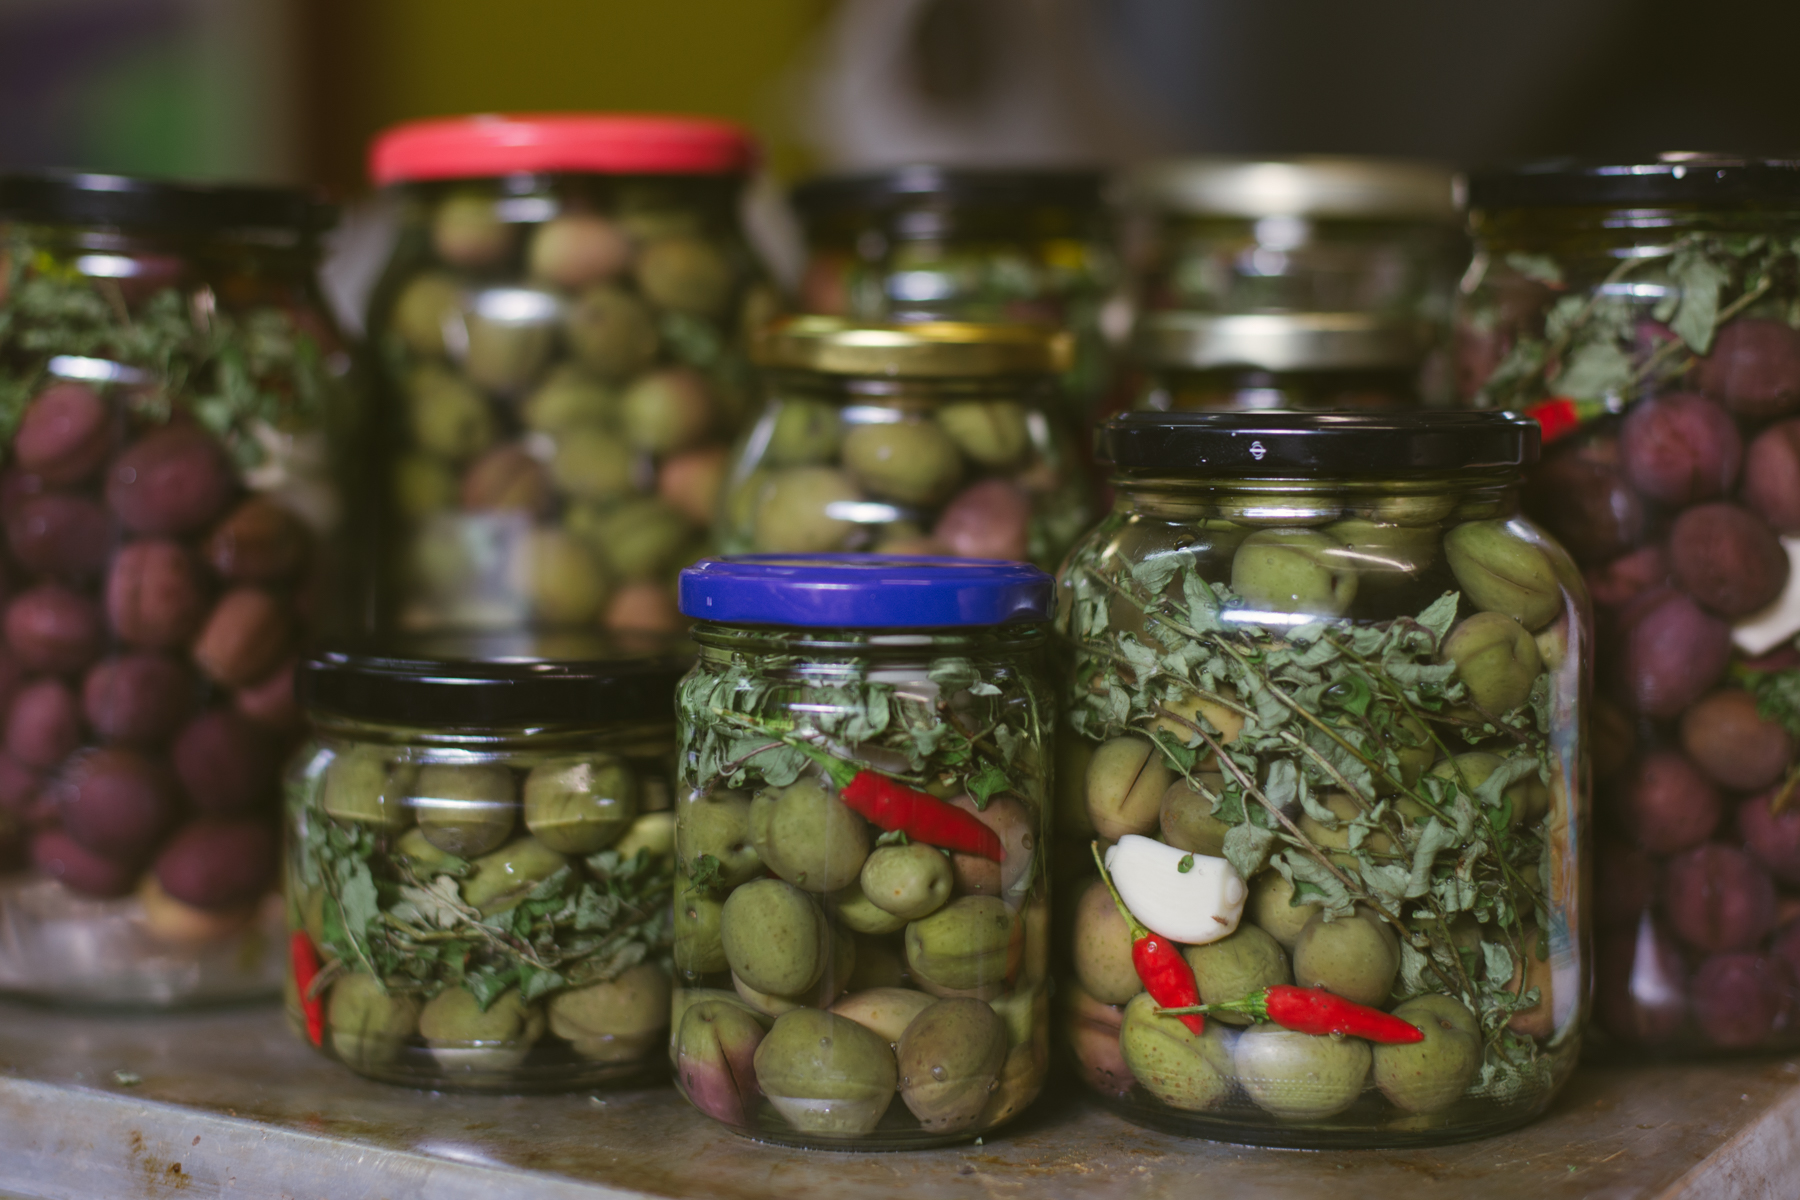 Here's the family portrait. Each jar was filled with brine and then topped off with olive oil to stop air from spoiling the goods (fingers crossed).